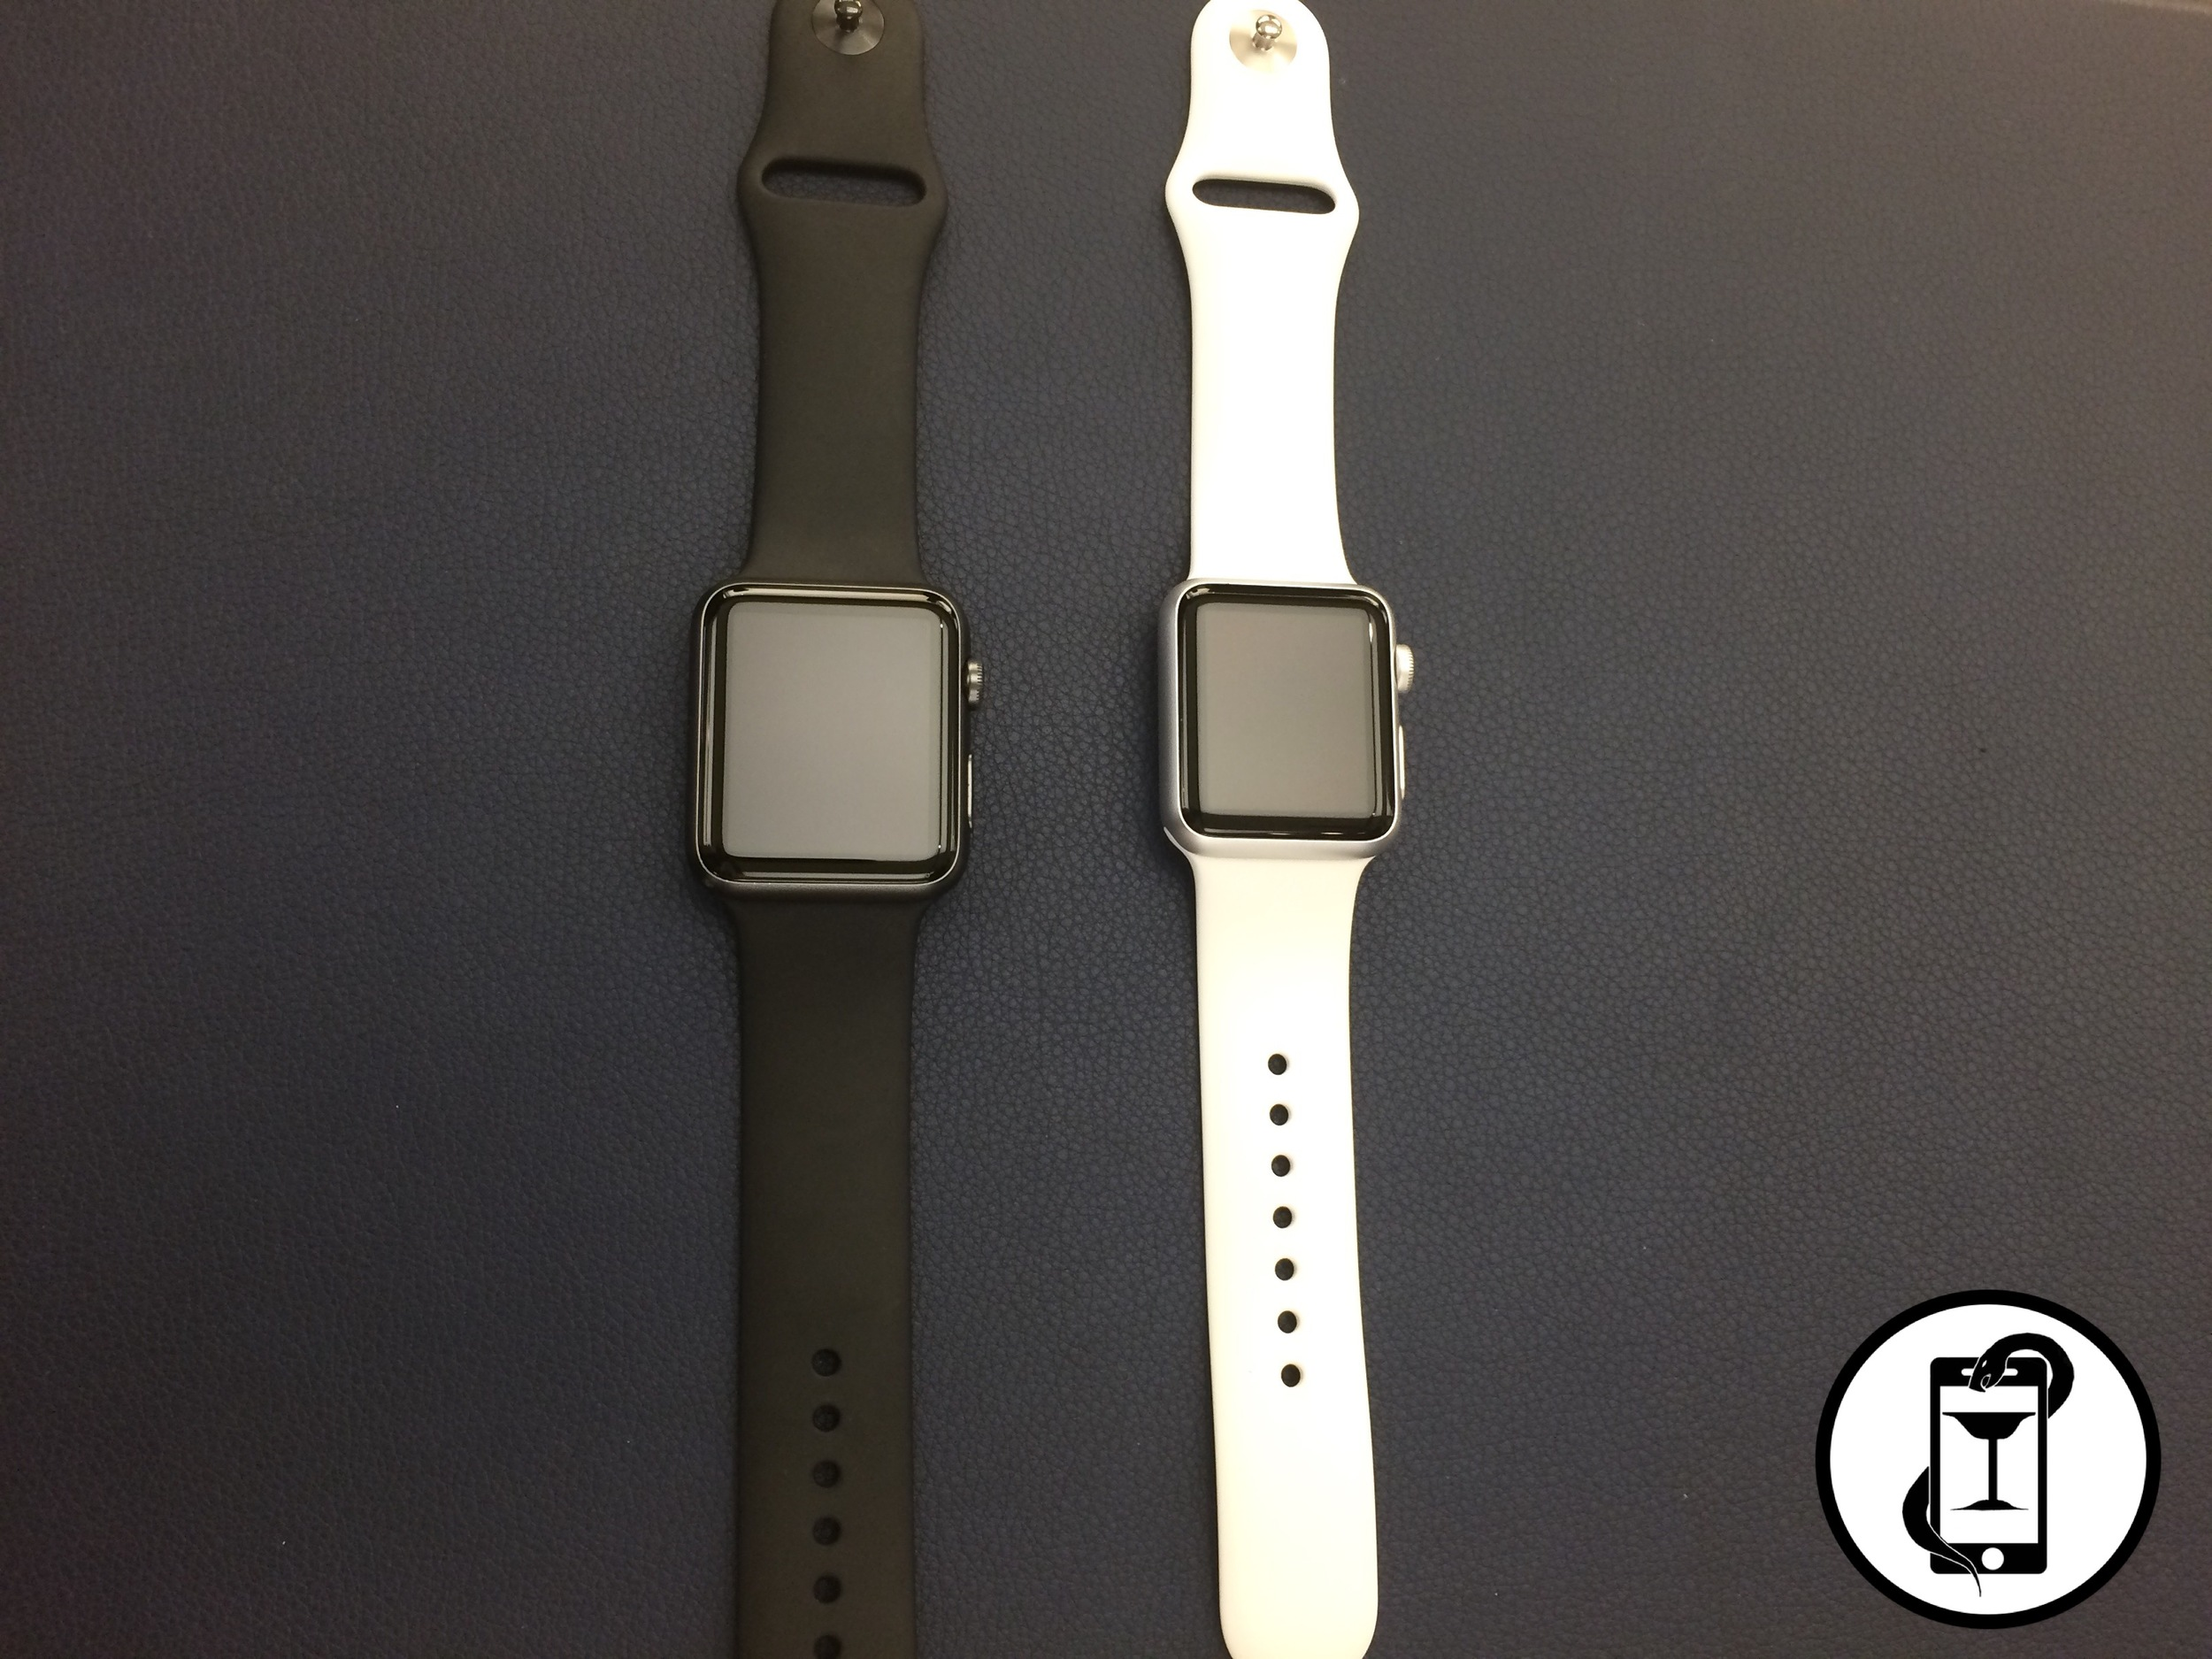 The 42mm and 38mm models.